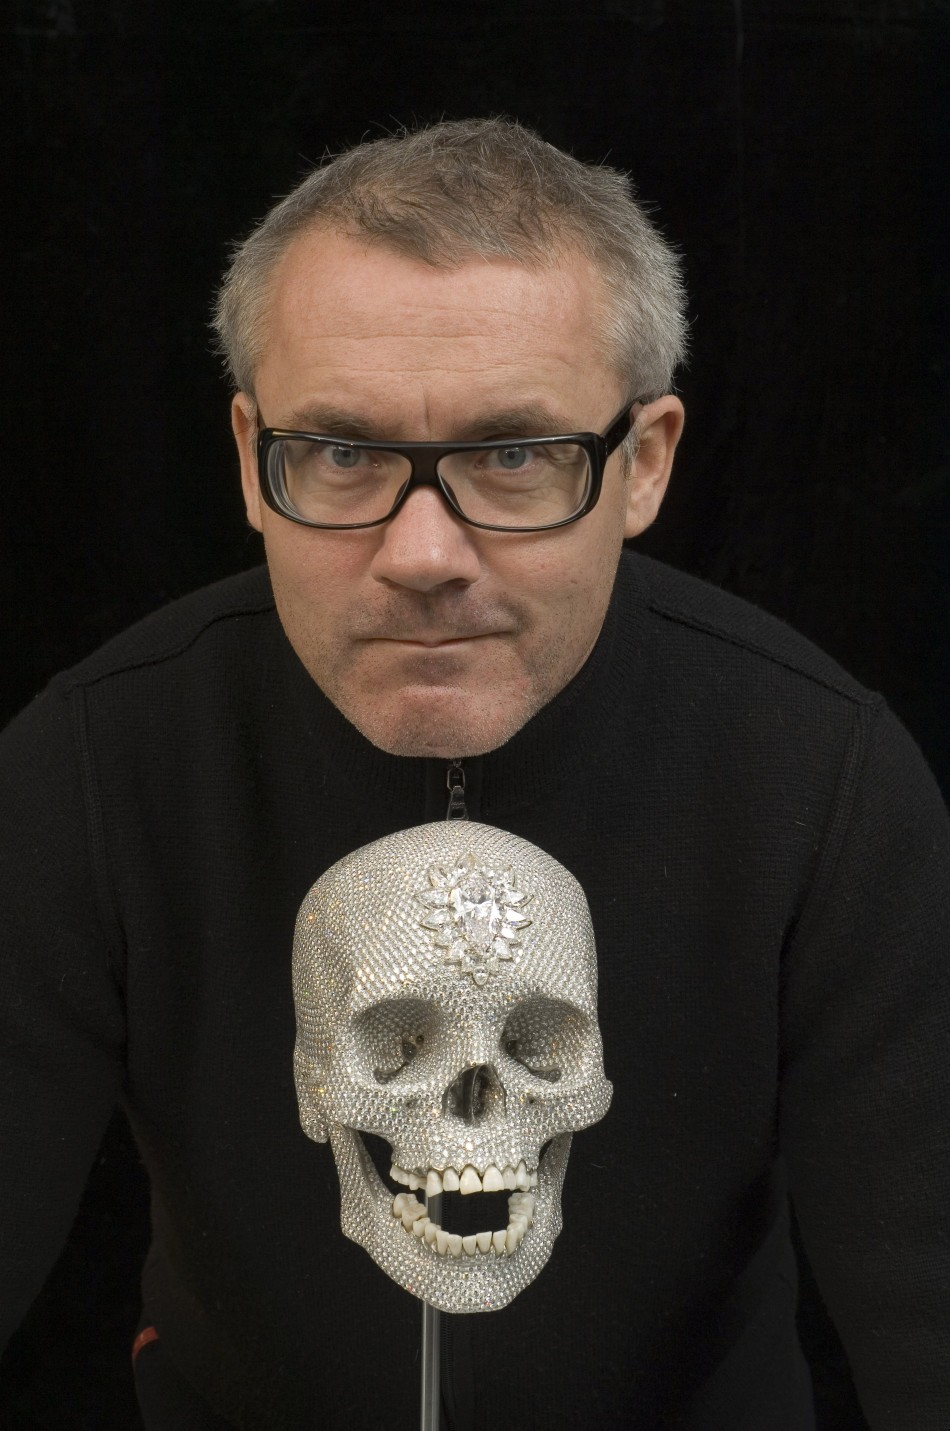 Damien Hirst to Open First Public Gallery with Over 2000